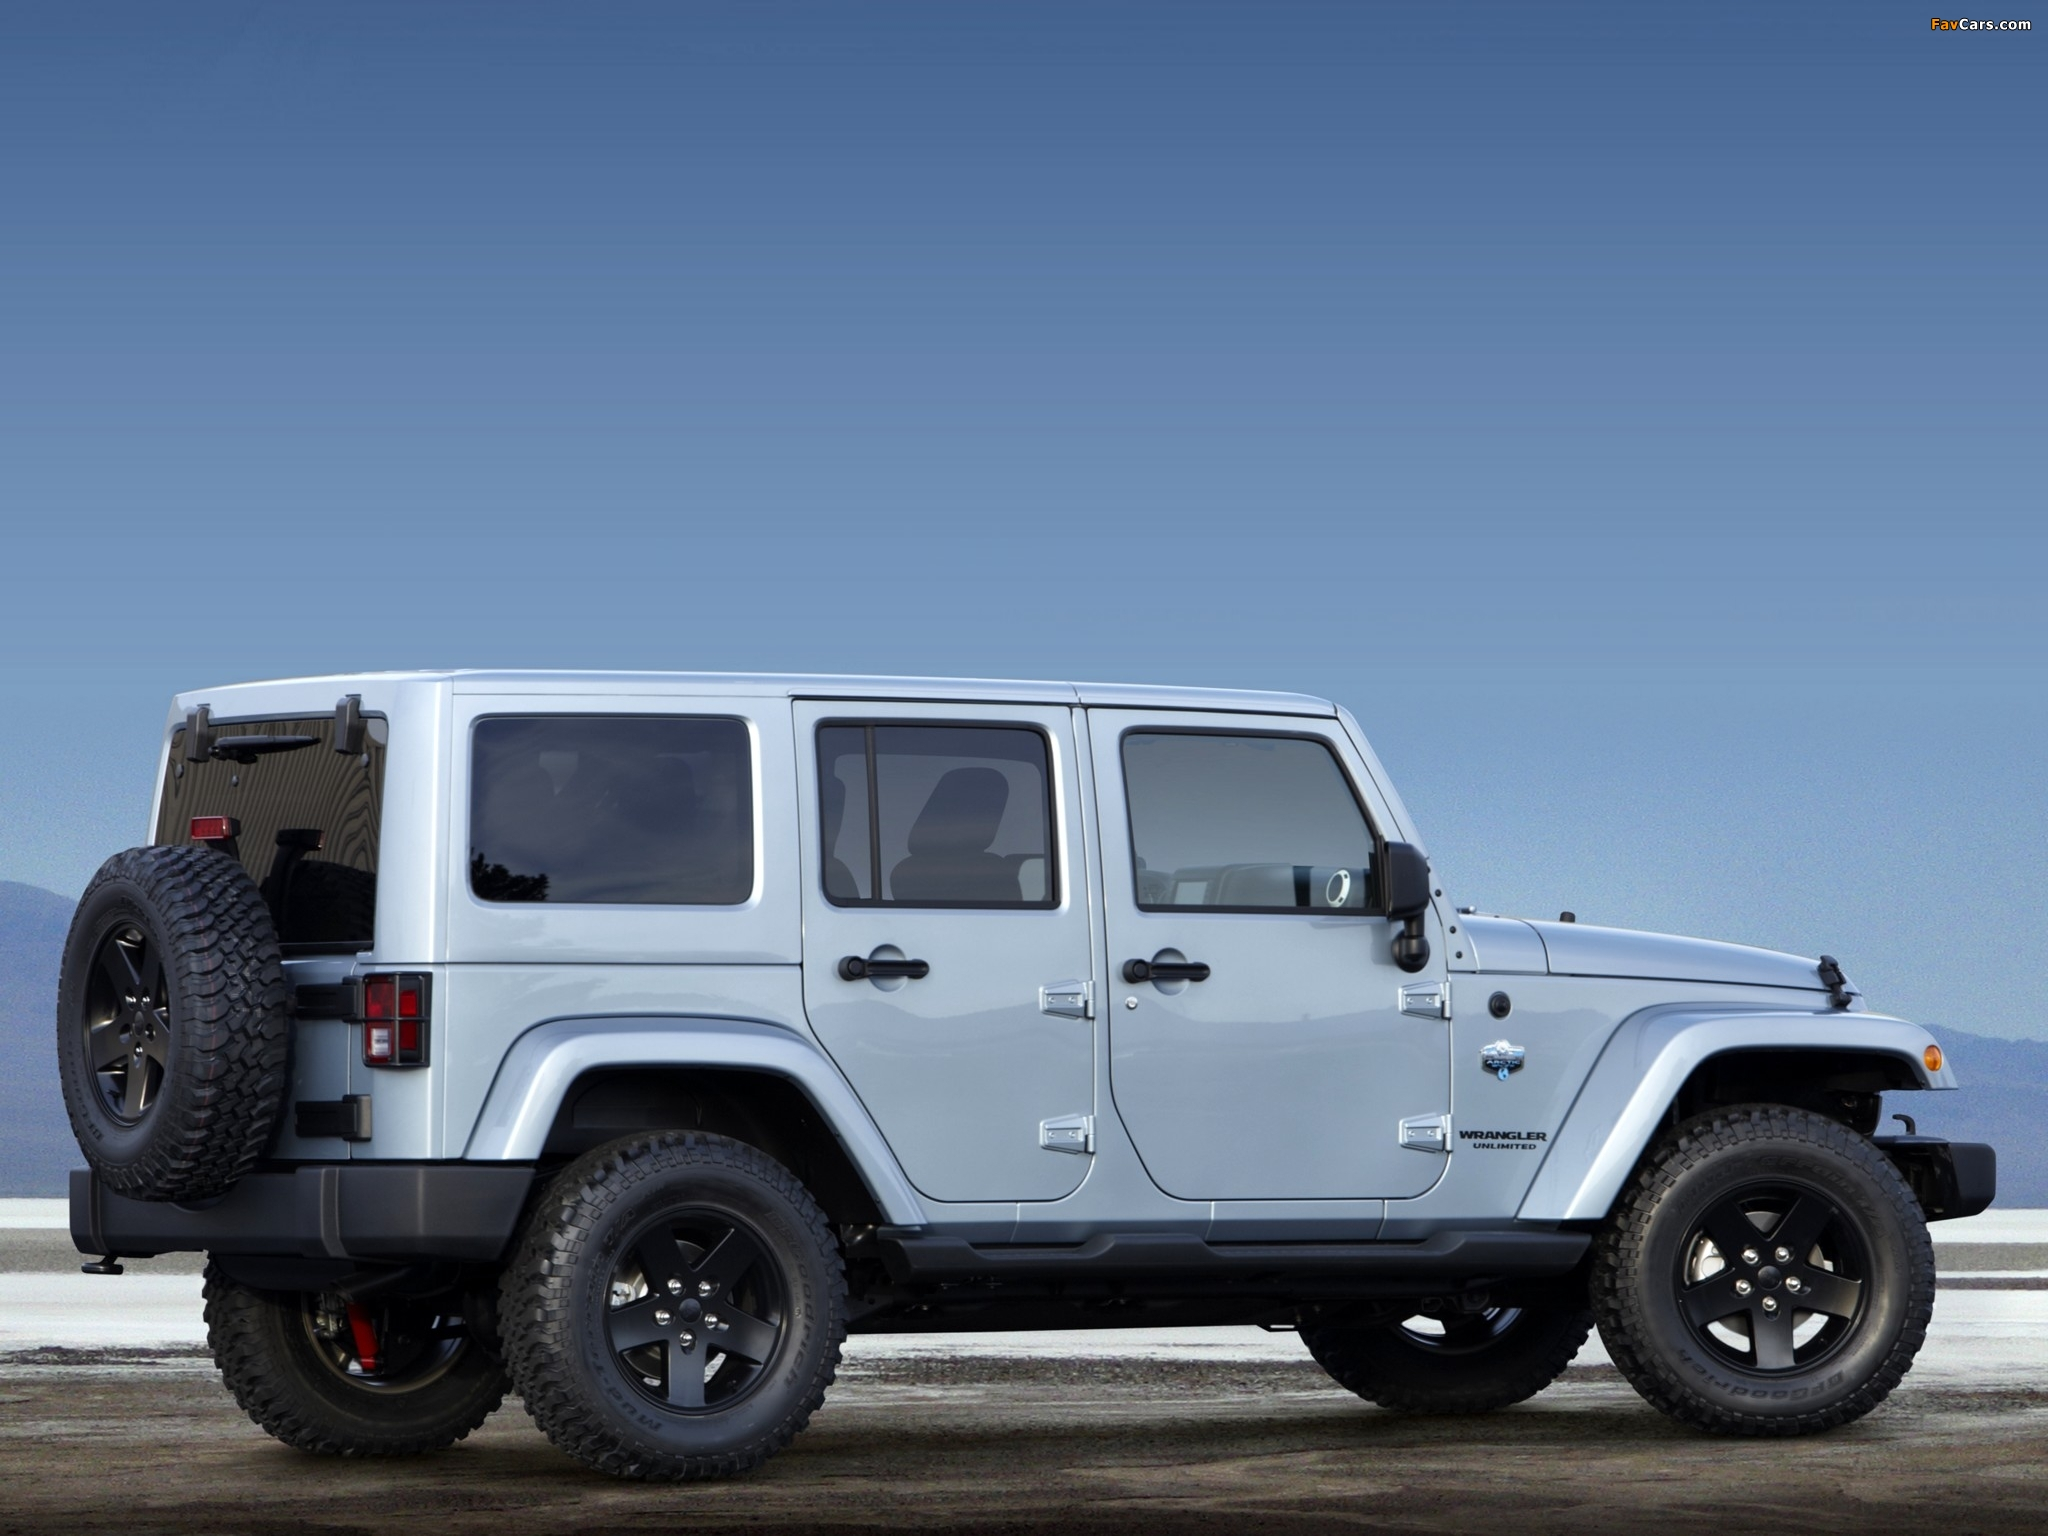 Jeep Wrangler Unlimited Arctic (JK) 2012 photos (2048 x 1536)